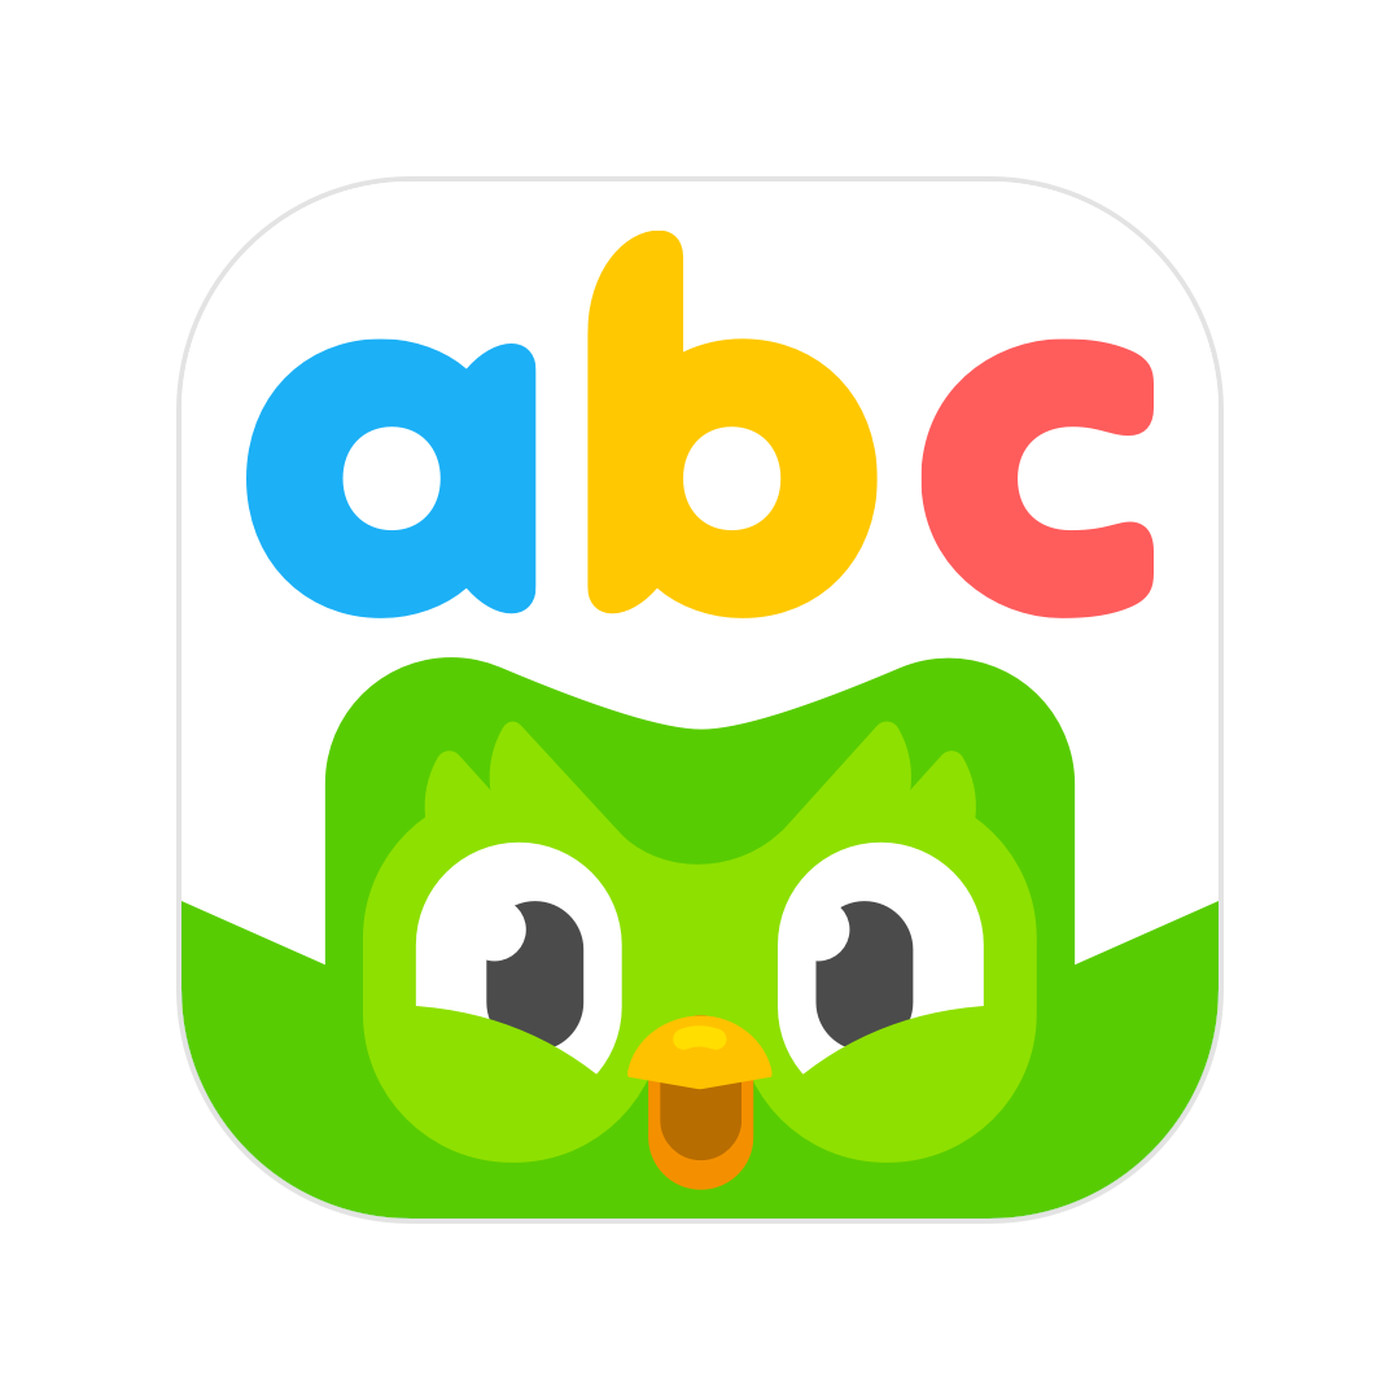 Duolingo is launching an iOS app to teach young kids how to read - The Verge